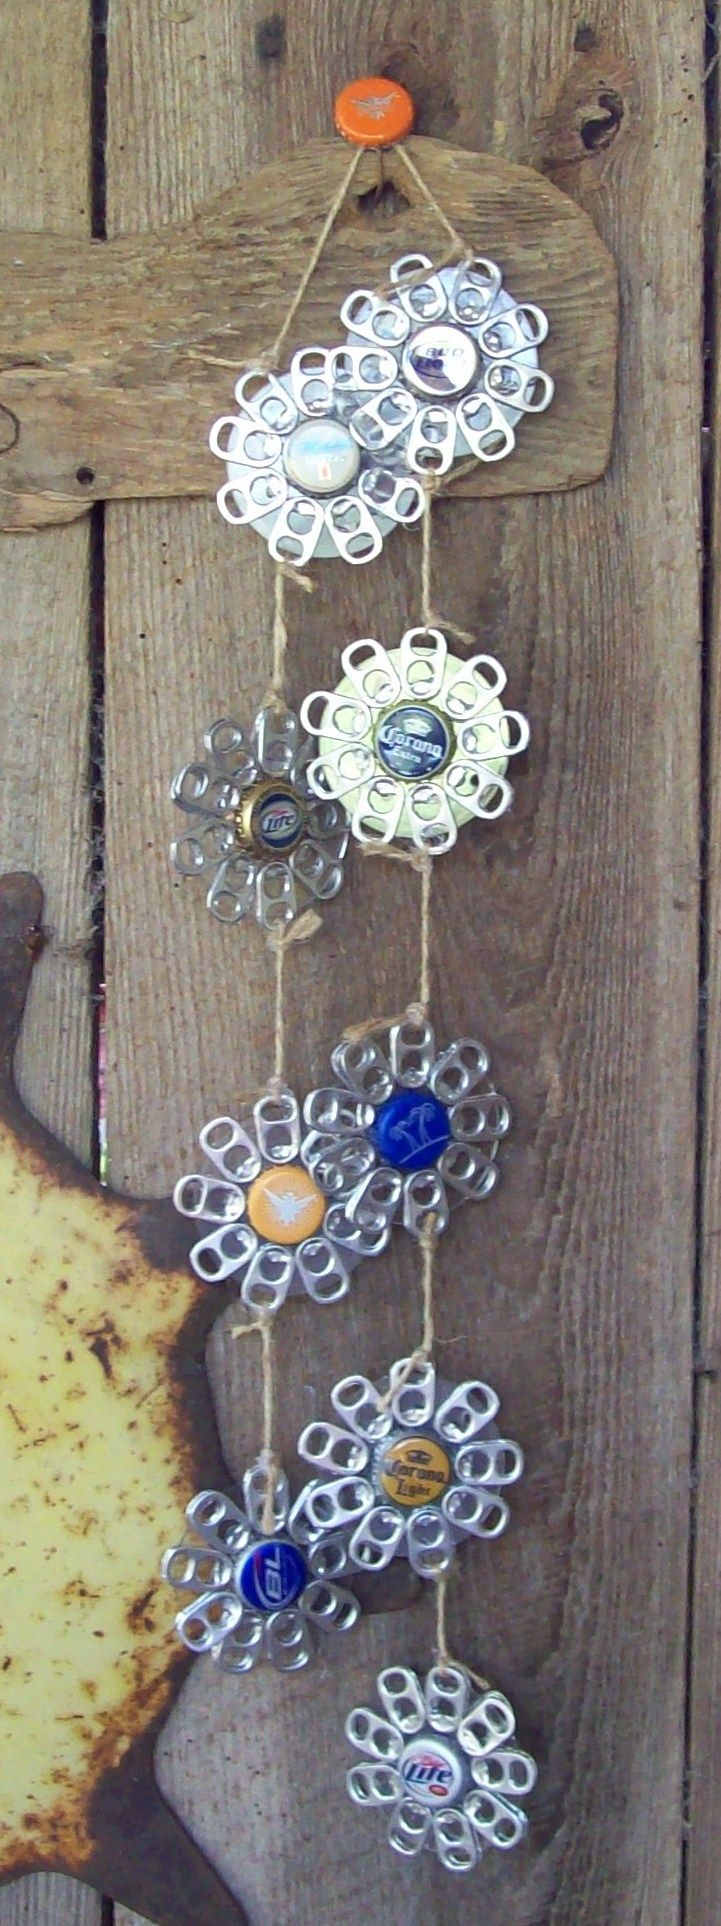 Bottlecap & Tab Windchime by GypsyMississippi www.etsy.com/shop/GypsyMississippi